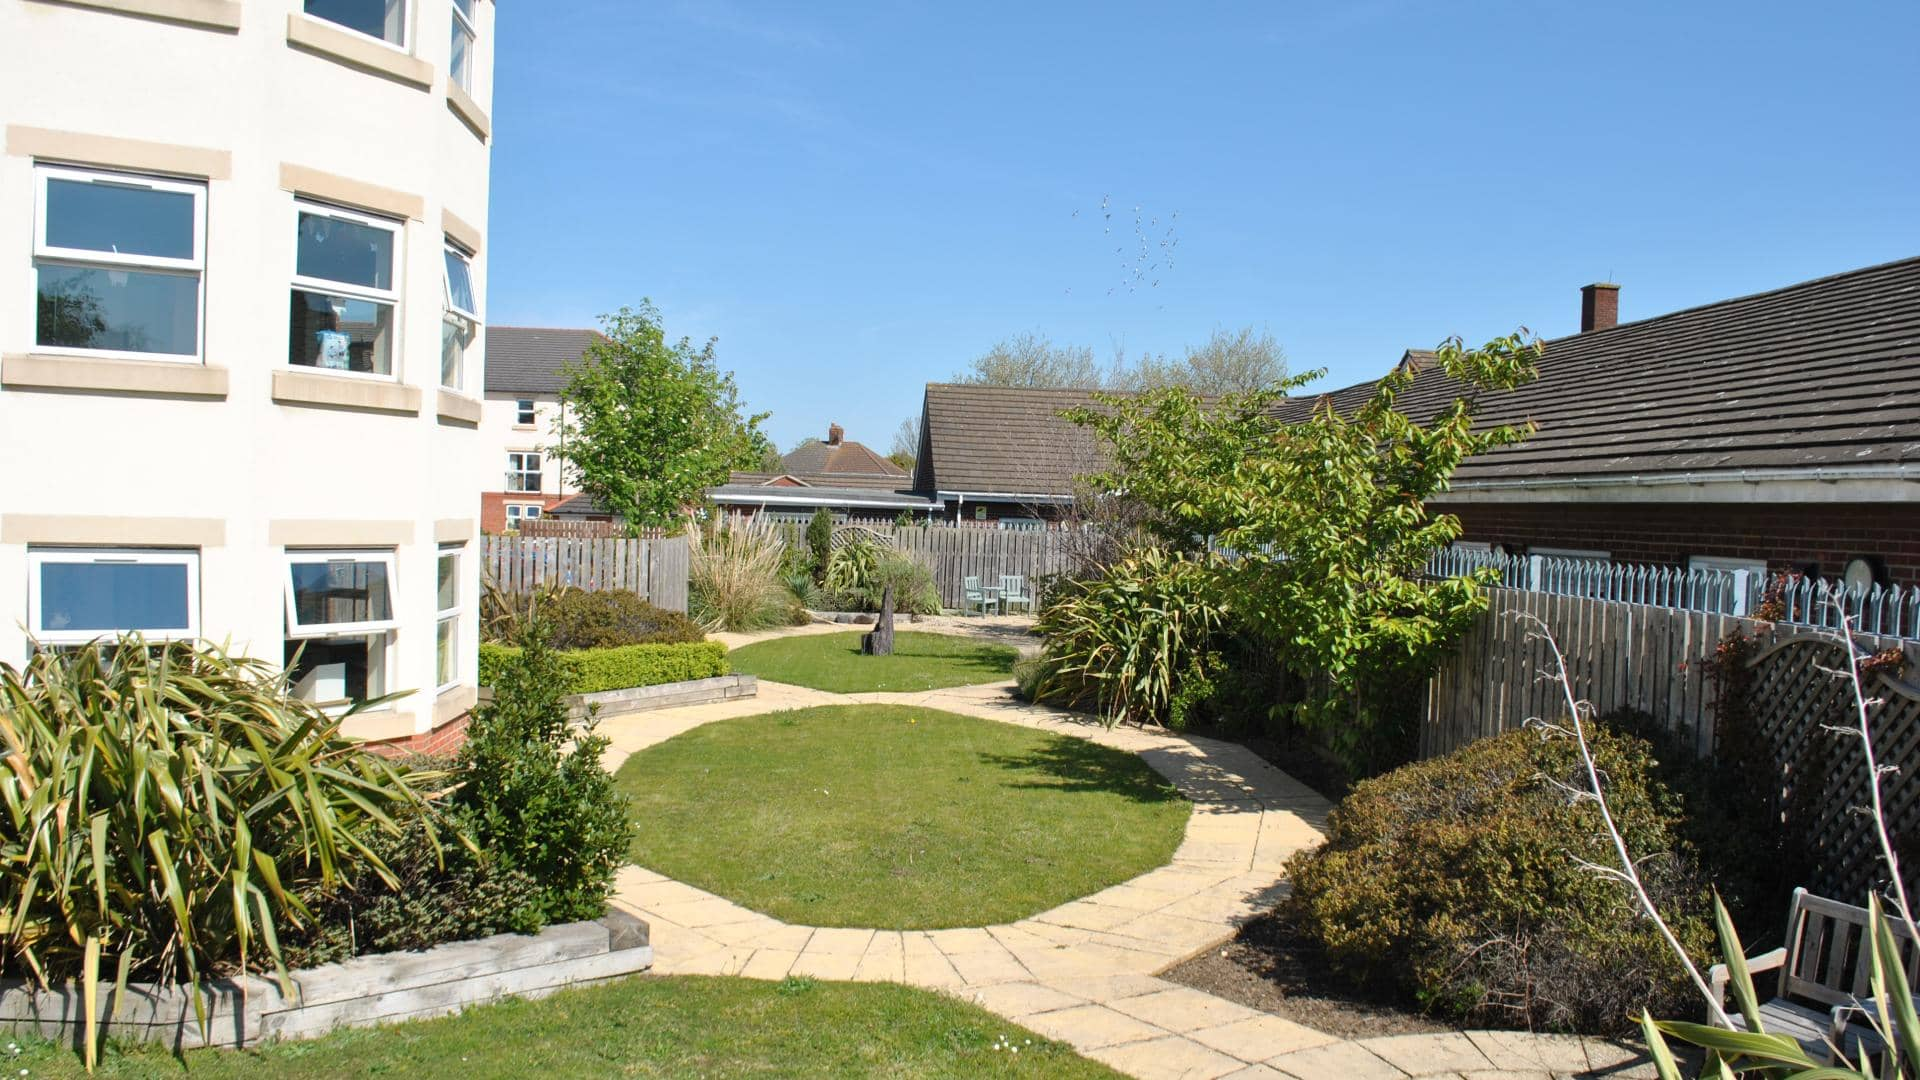 Garden at Grimsby Grange and Manor Care Home